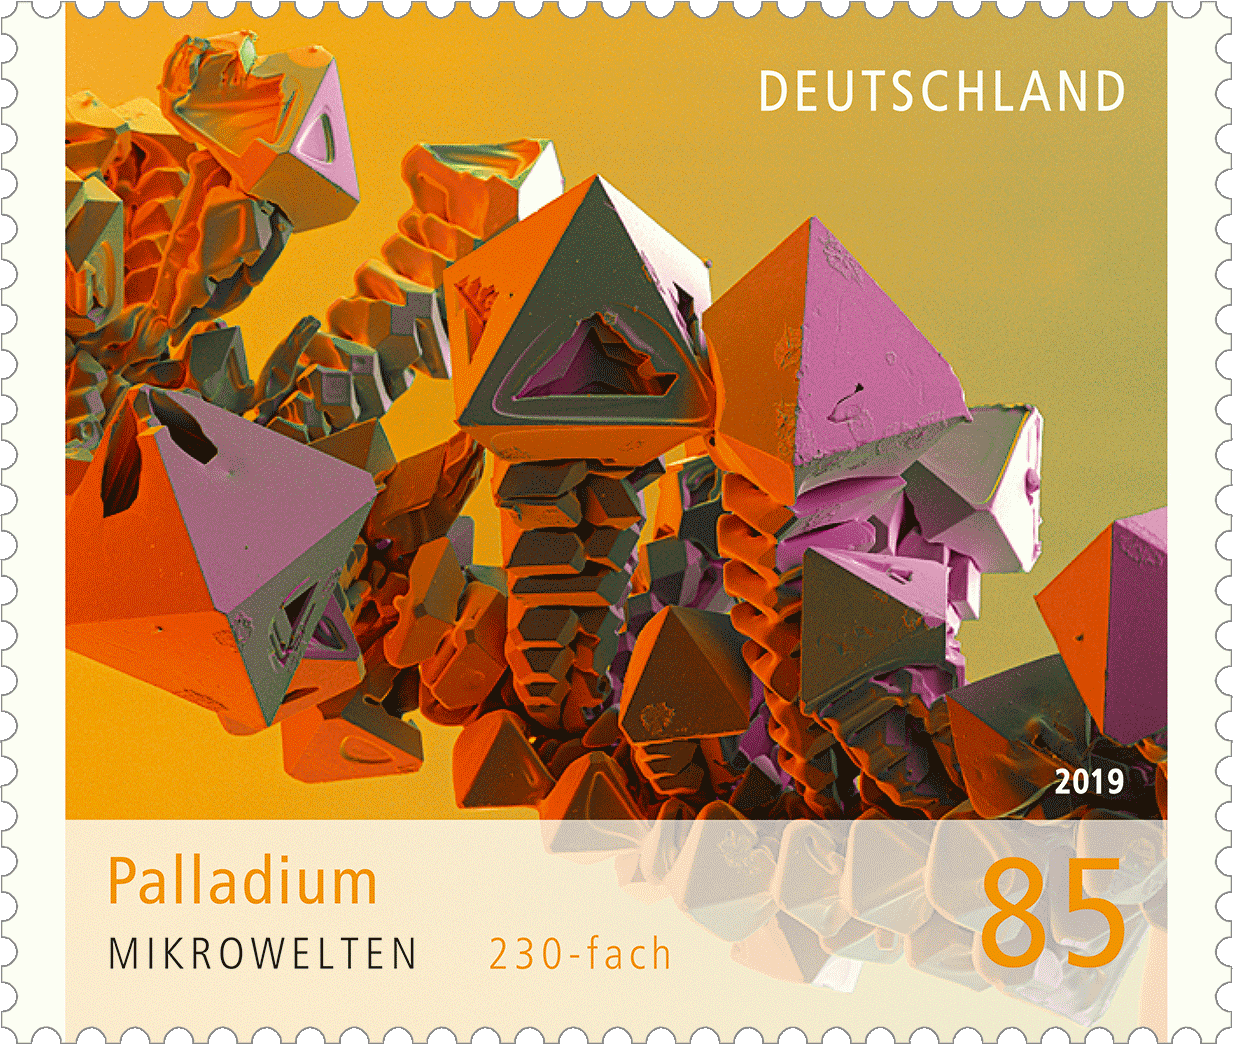 https://www.borek.de/briefmarke-palladium